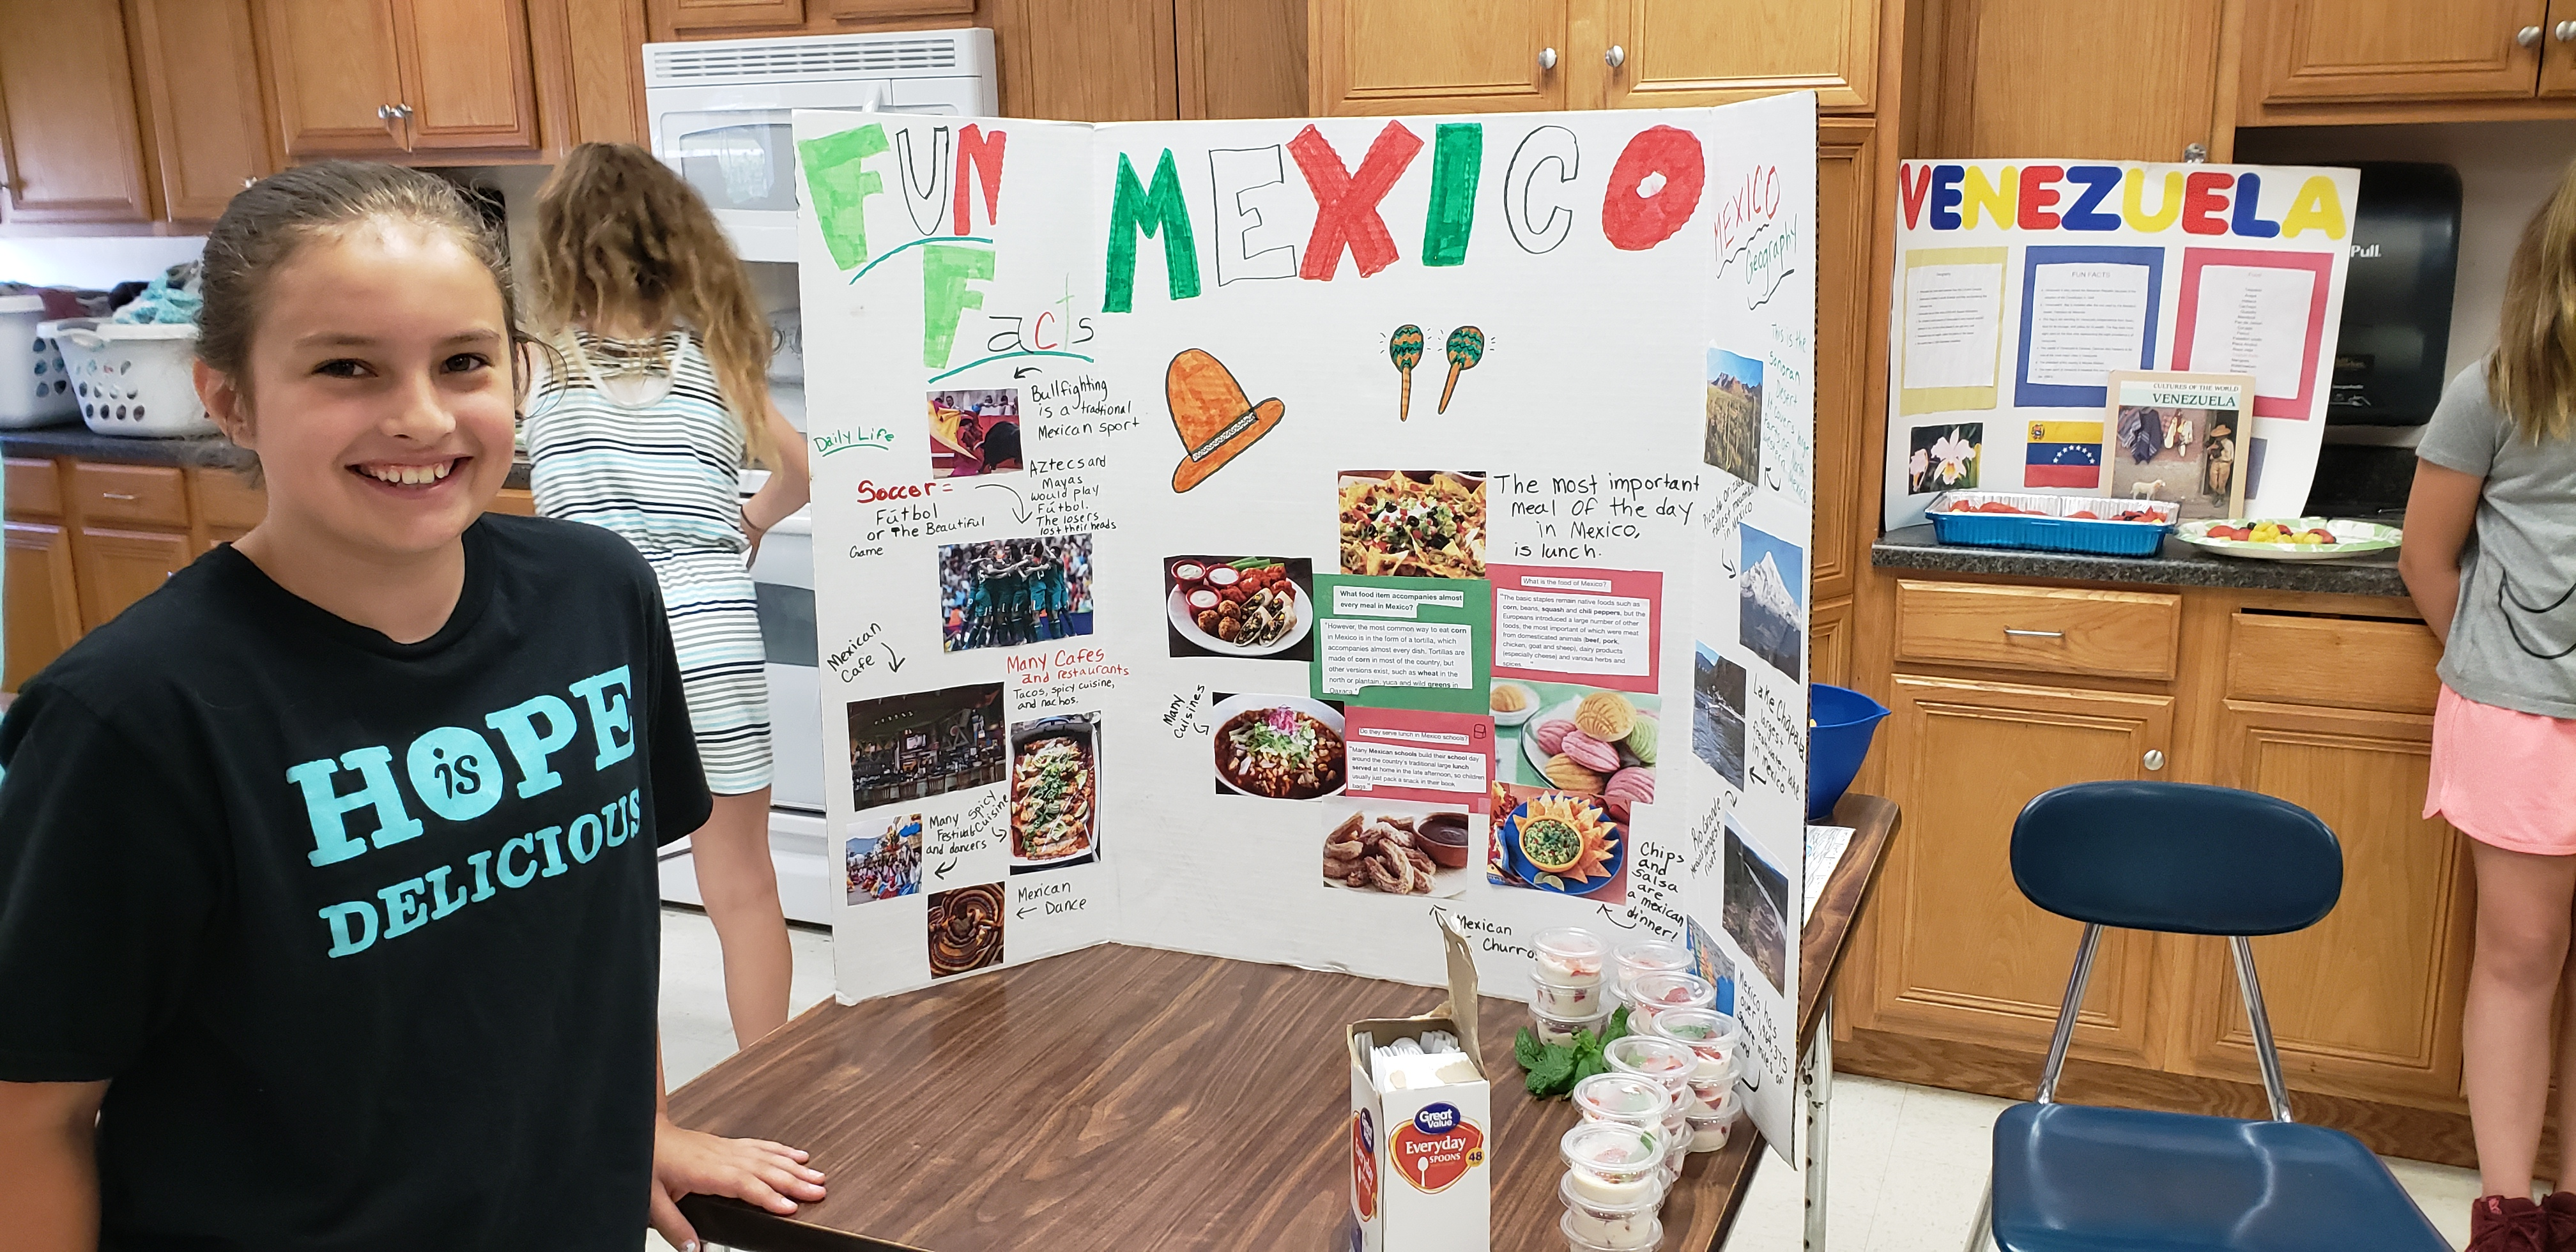 a girl shows her table display of Mexico